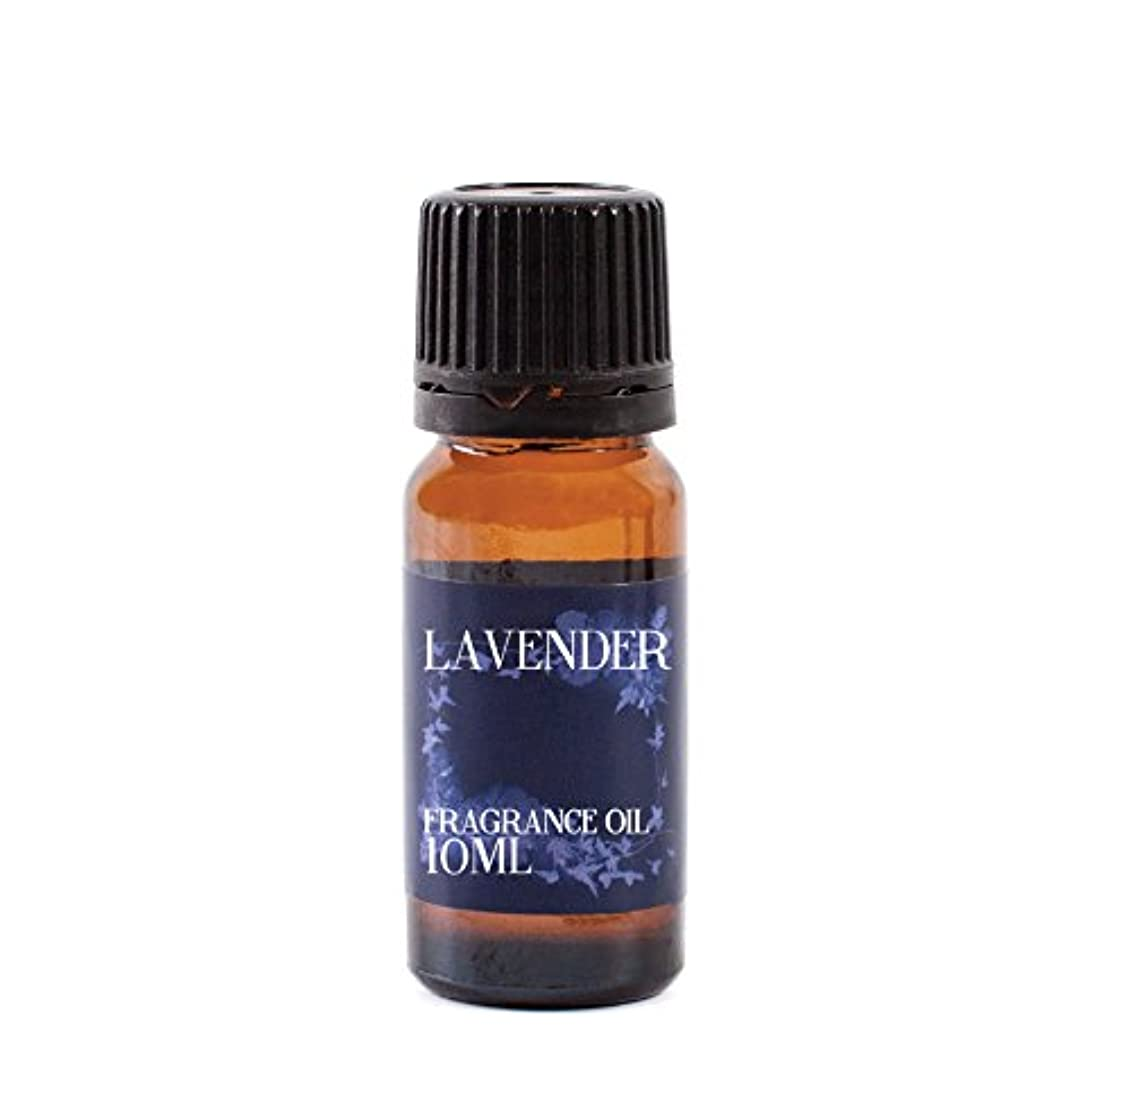 Mystic Moments | Lavender Fragrance Oil - 10ml